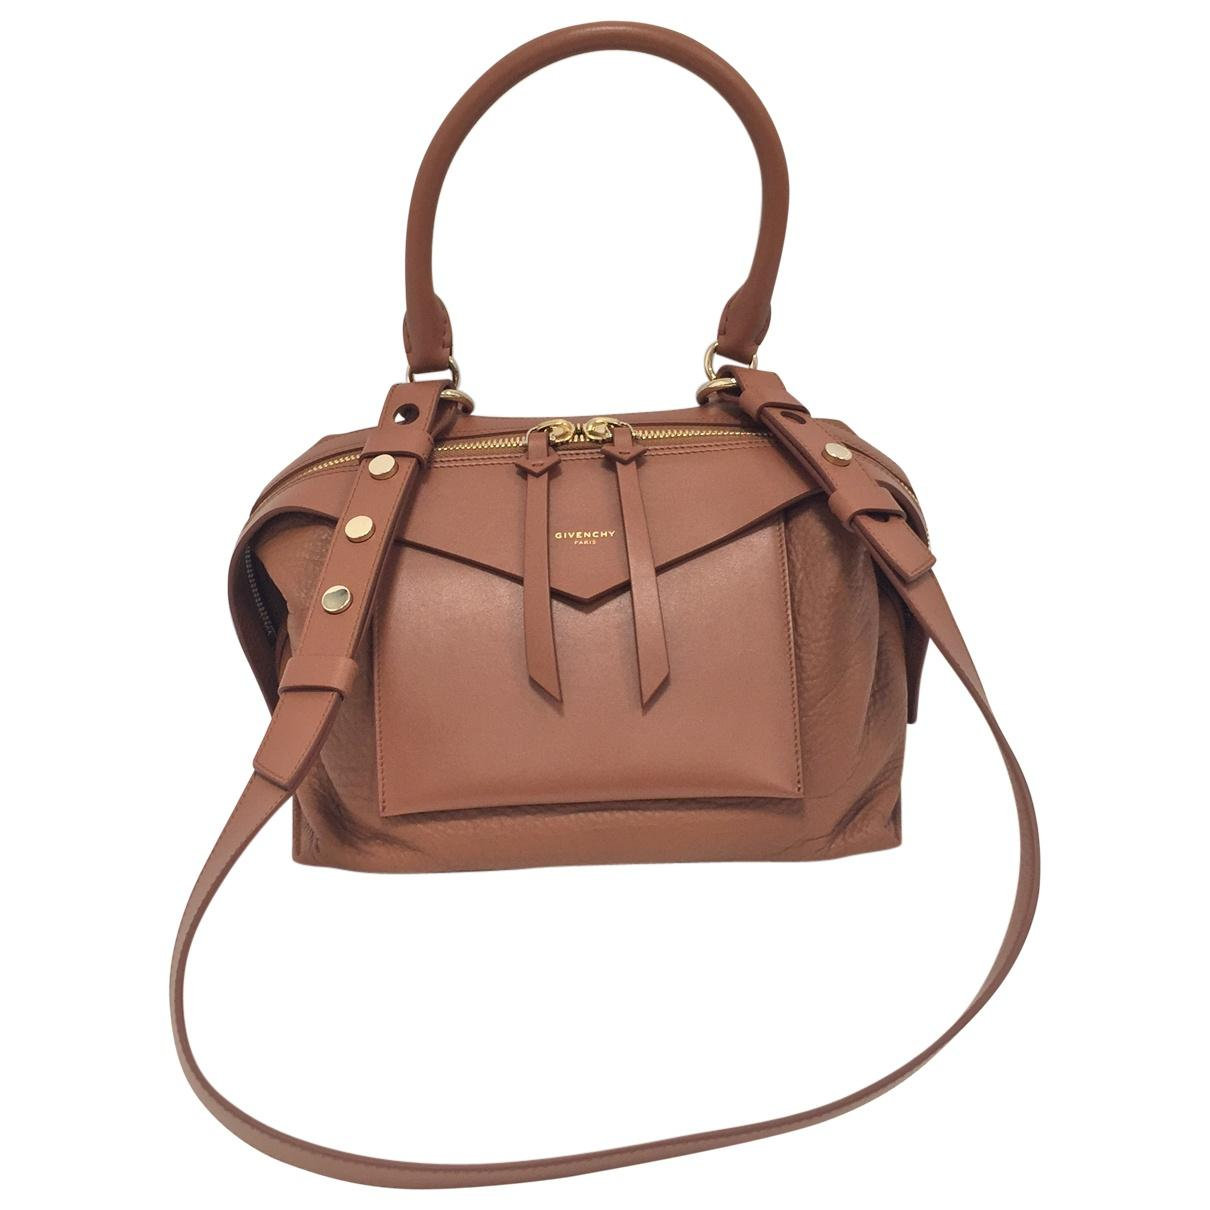 Givenchy Sway Brown Leather Handbag in Brown - Lyst ba2c6cc7807e4